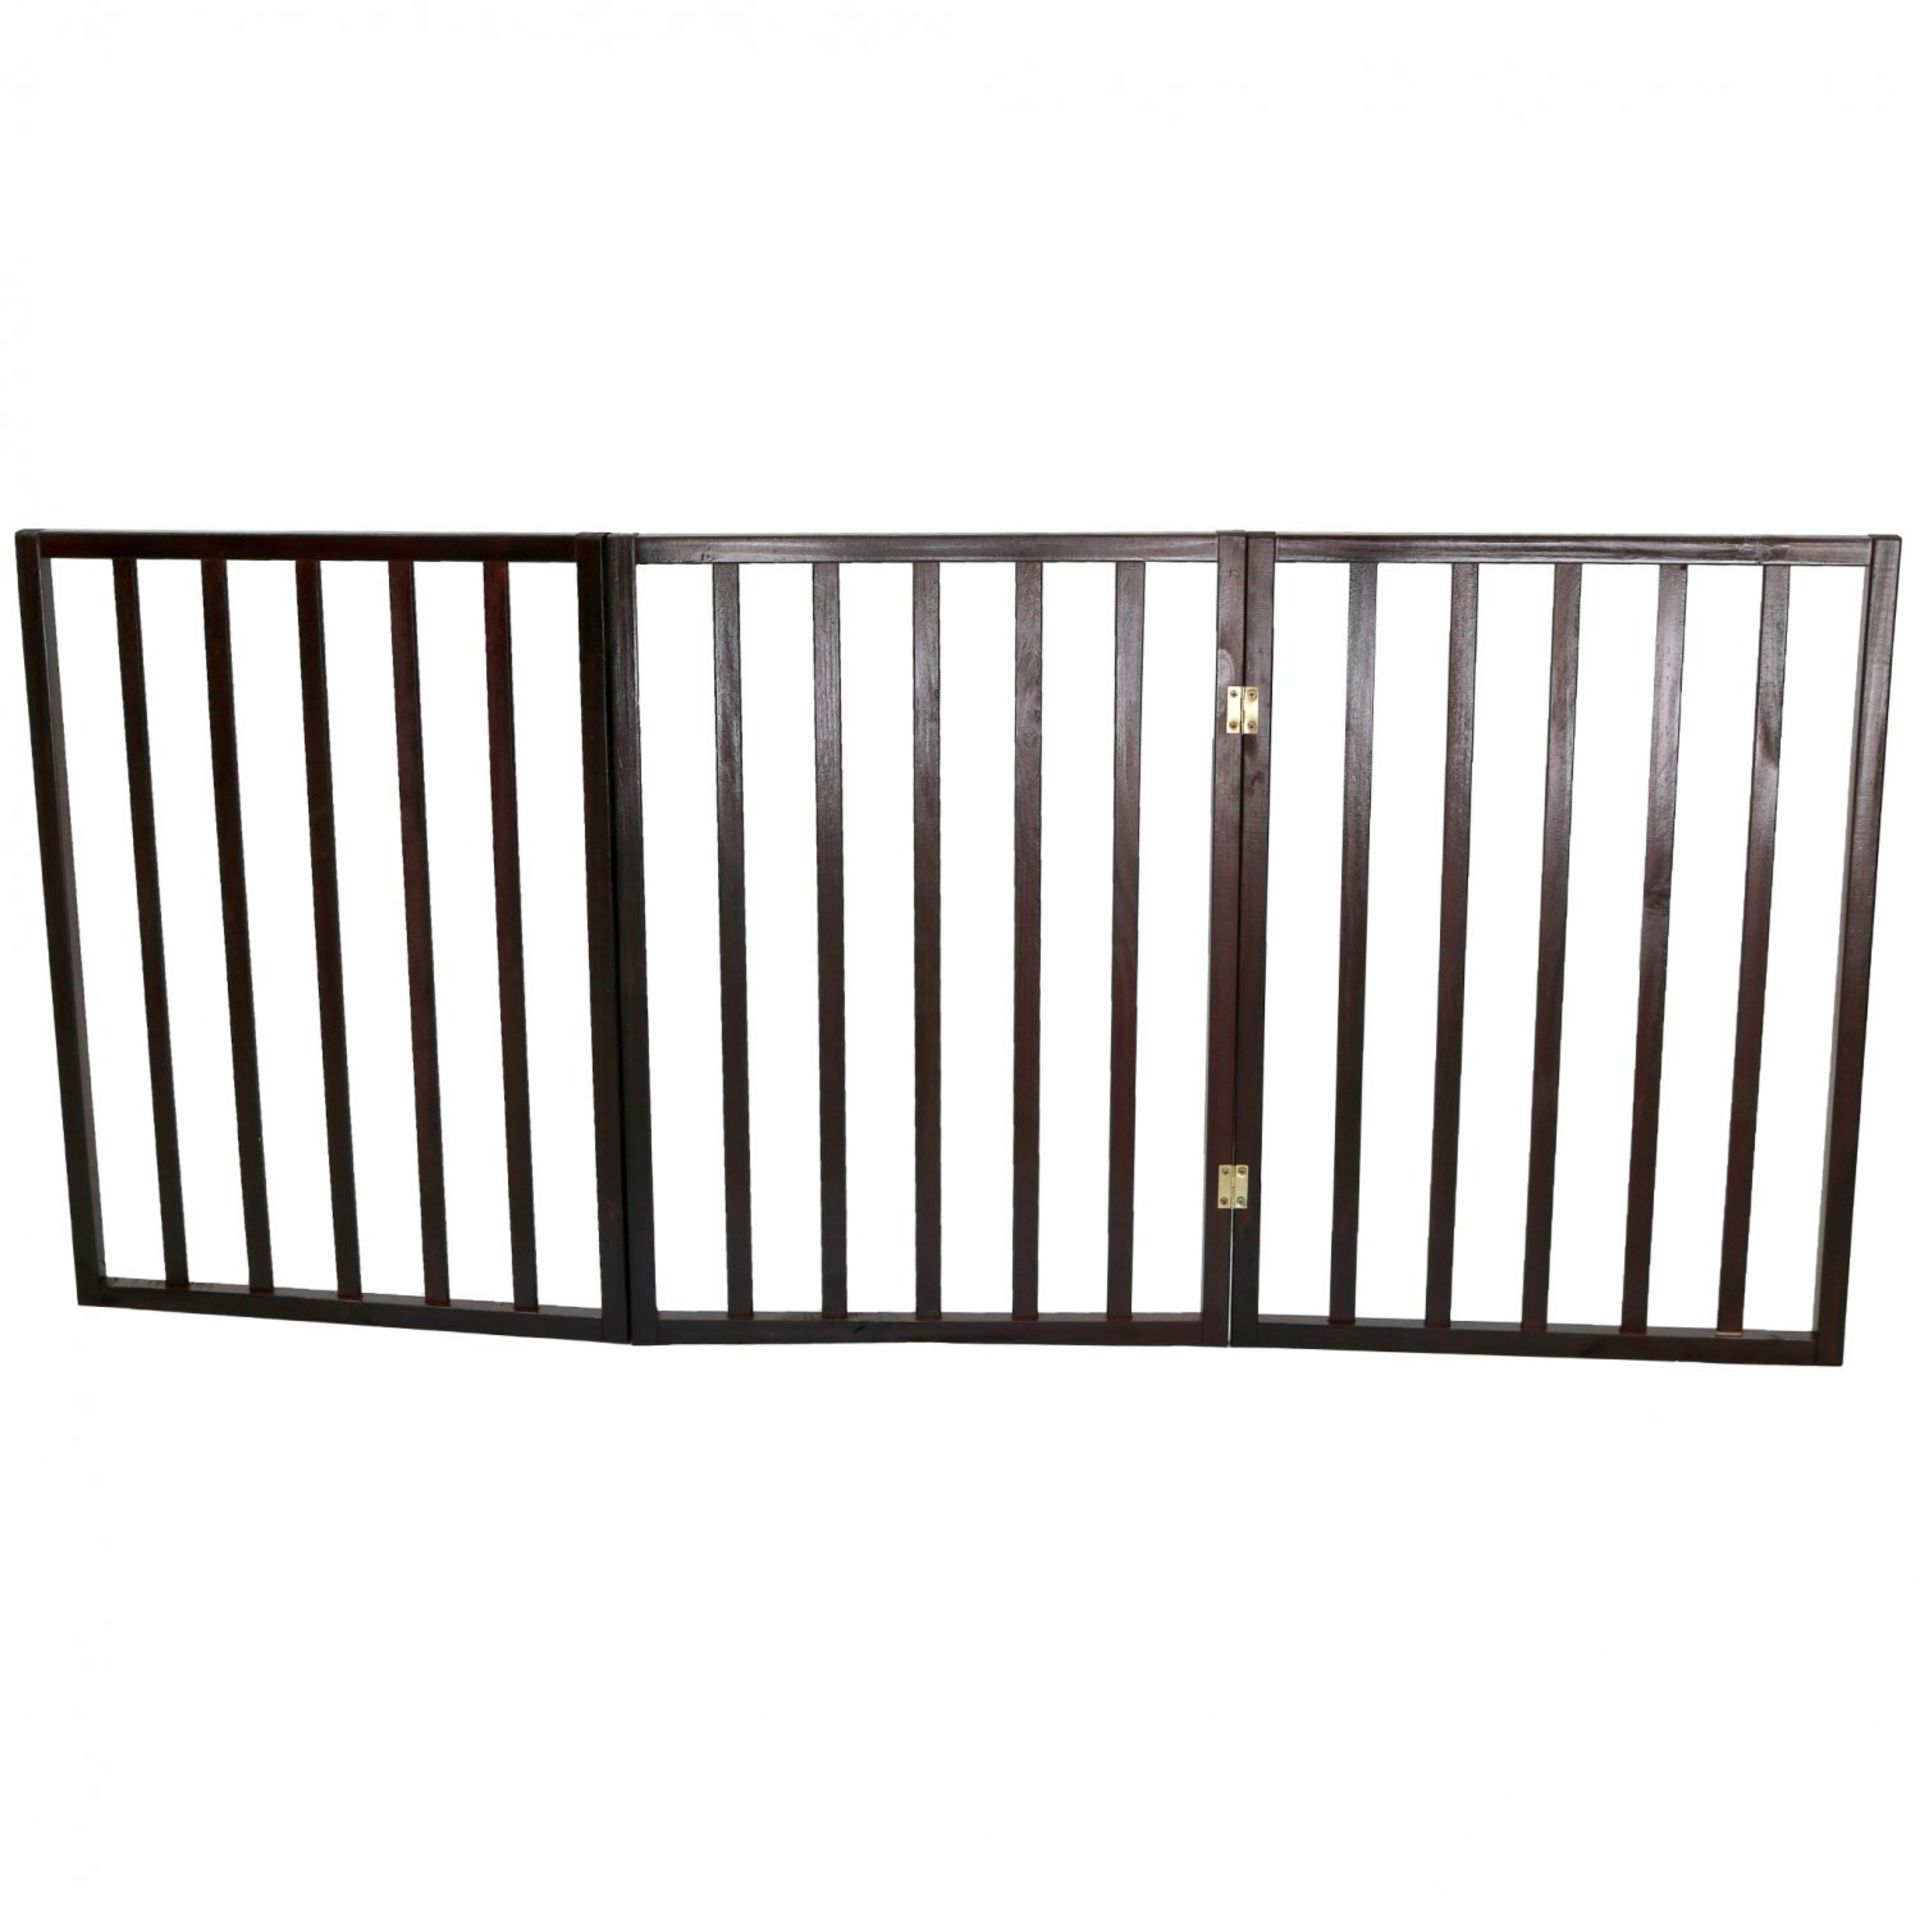 (RL31) Dog Safety Folding Wooden Pet Gate Portable Indoor Barrier Keep your dog from tread... - Image 2 of 2